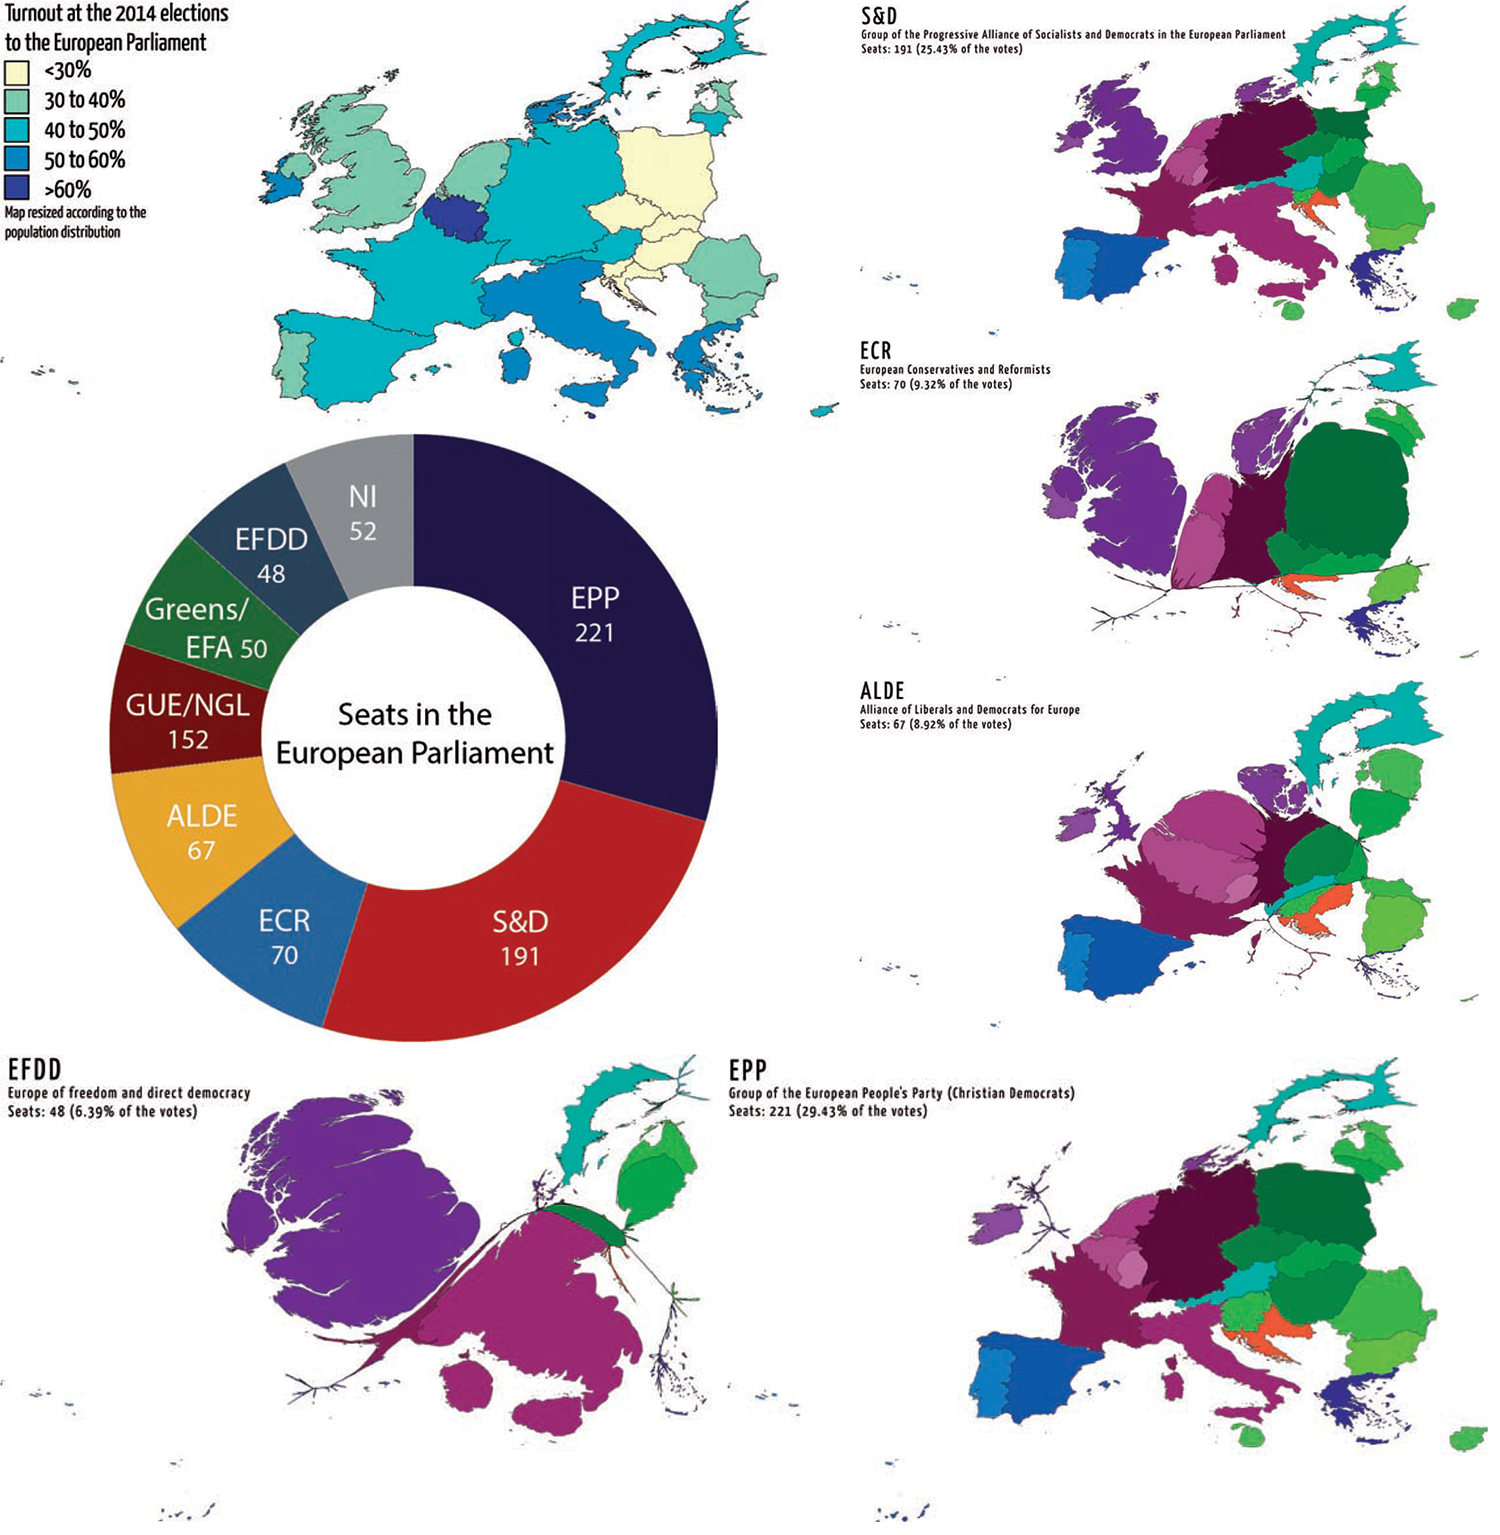 Maps and visualisations of the 2014 elections to the European Parliament